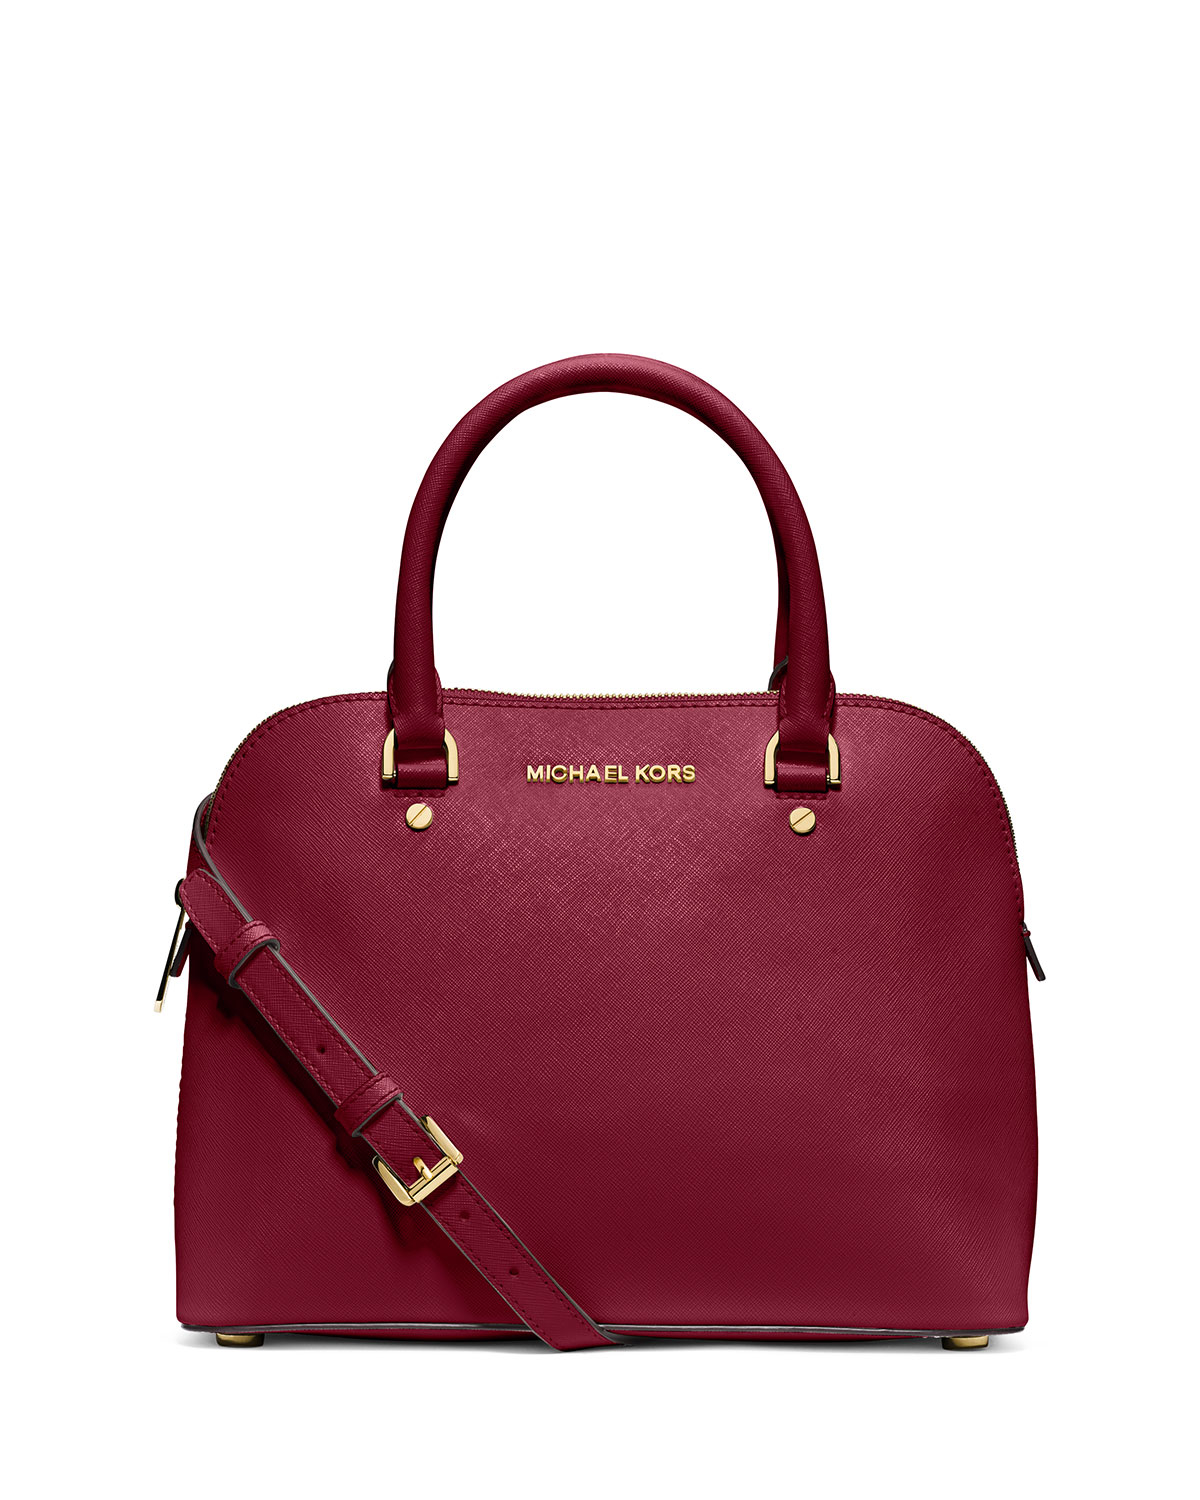 michael michael kors cindy medium dome satchel bag in red lyst. Black Bedroom Furniture Sets. Home Design Ideas